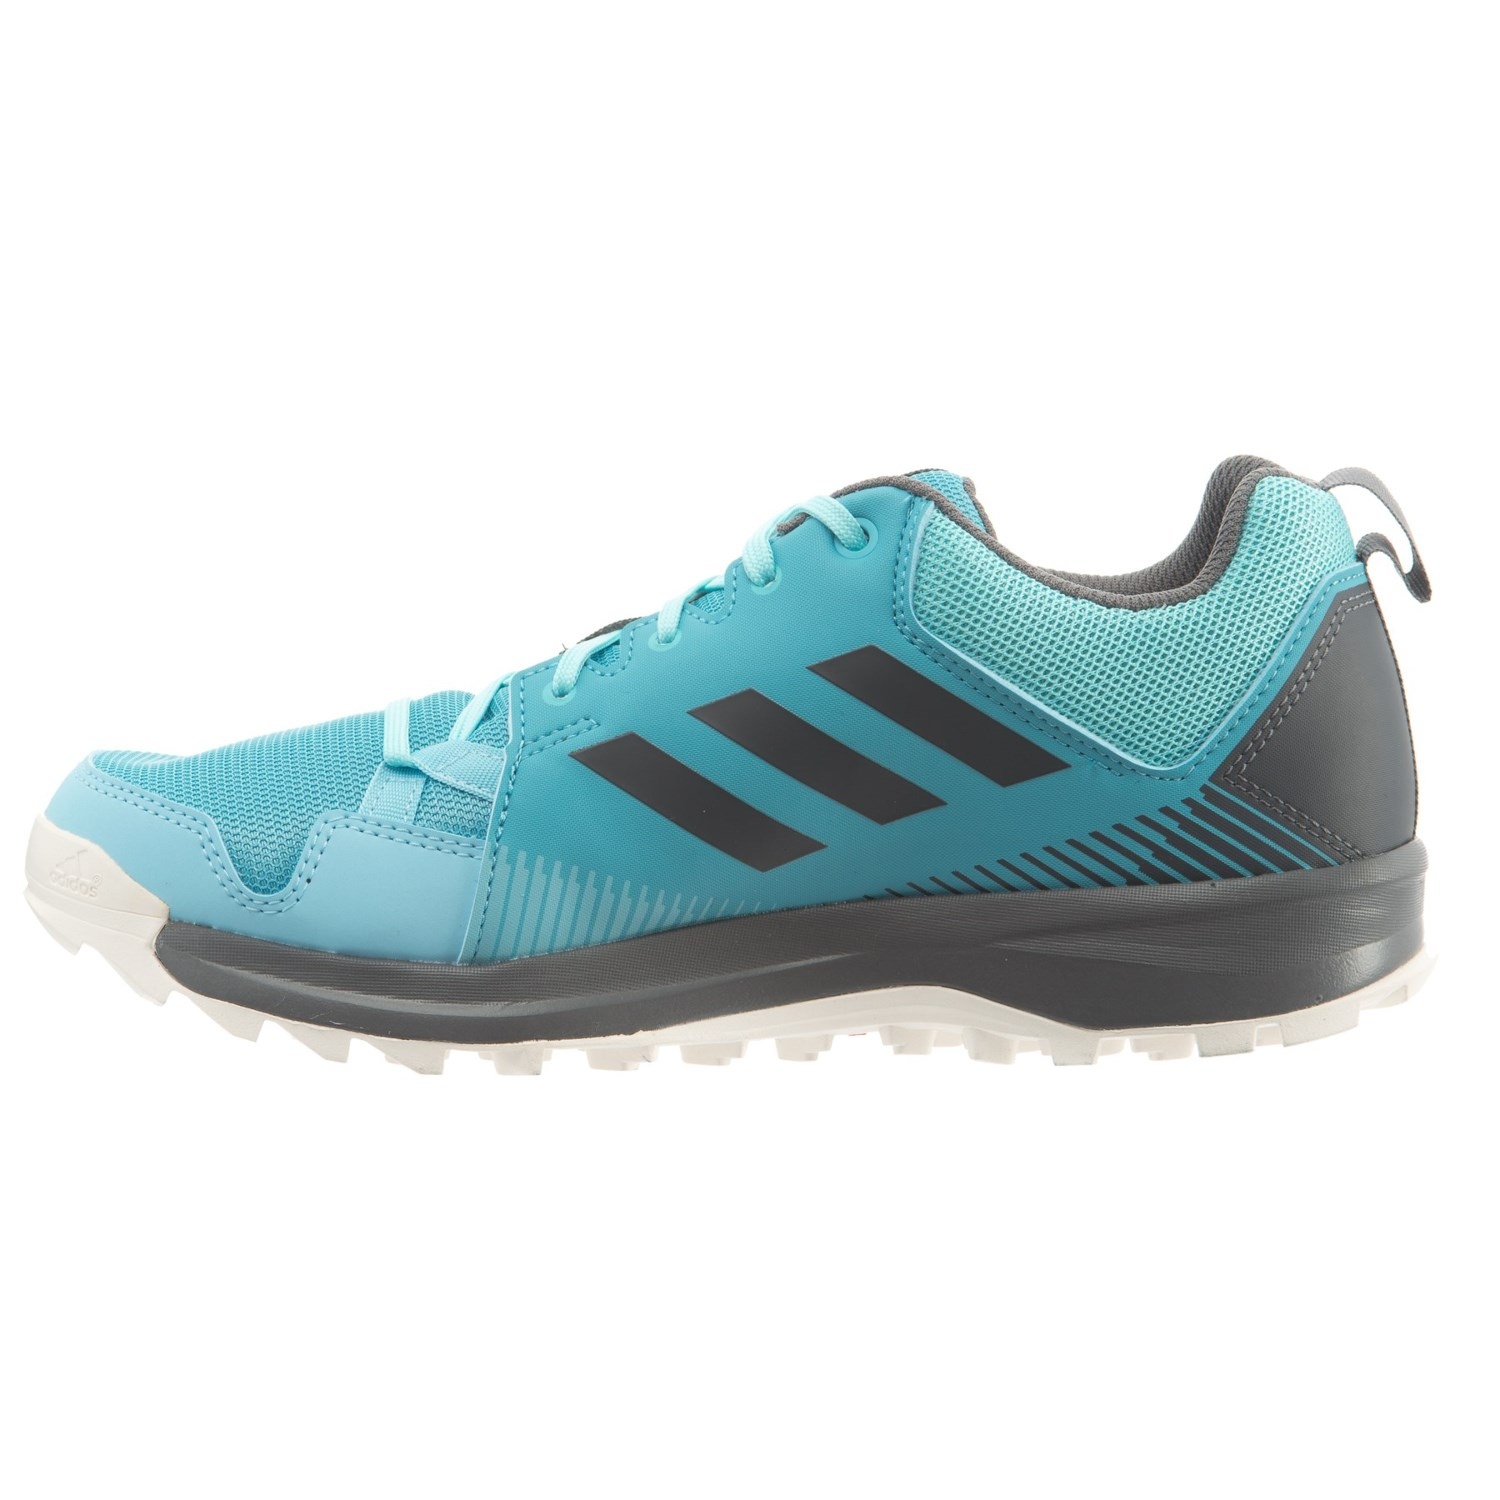 8973c1a11d2a26 adidas Terrex Tracerocker Trail Running Shoes (For Women) - Save 50%